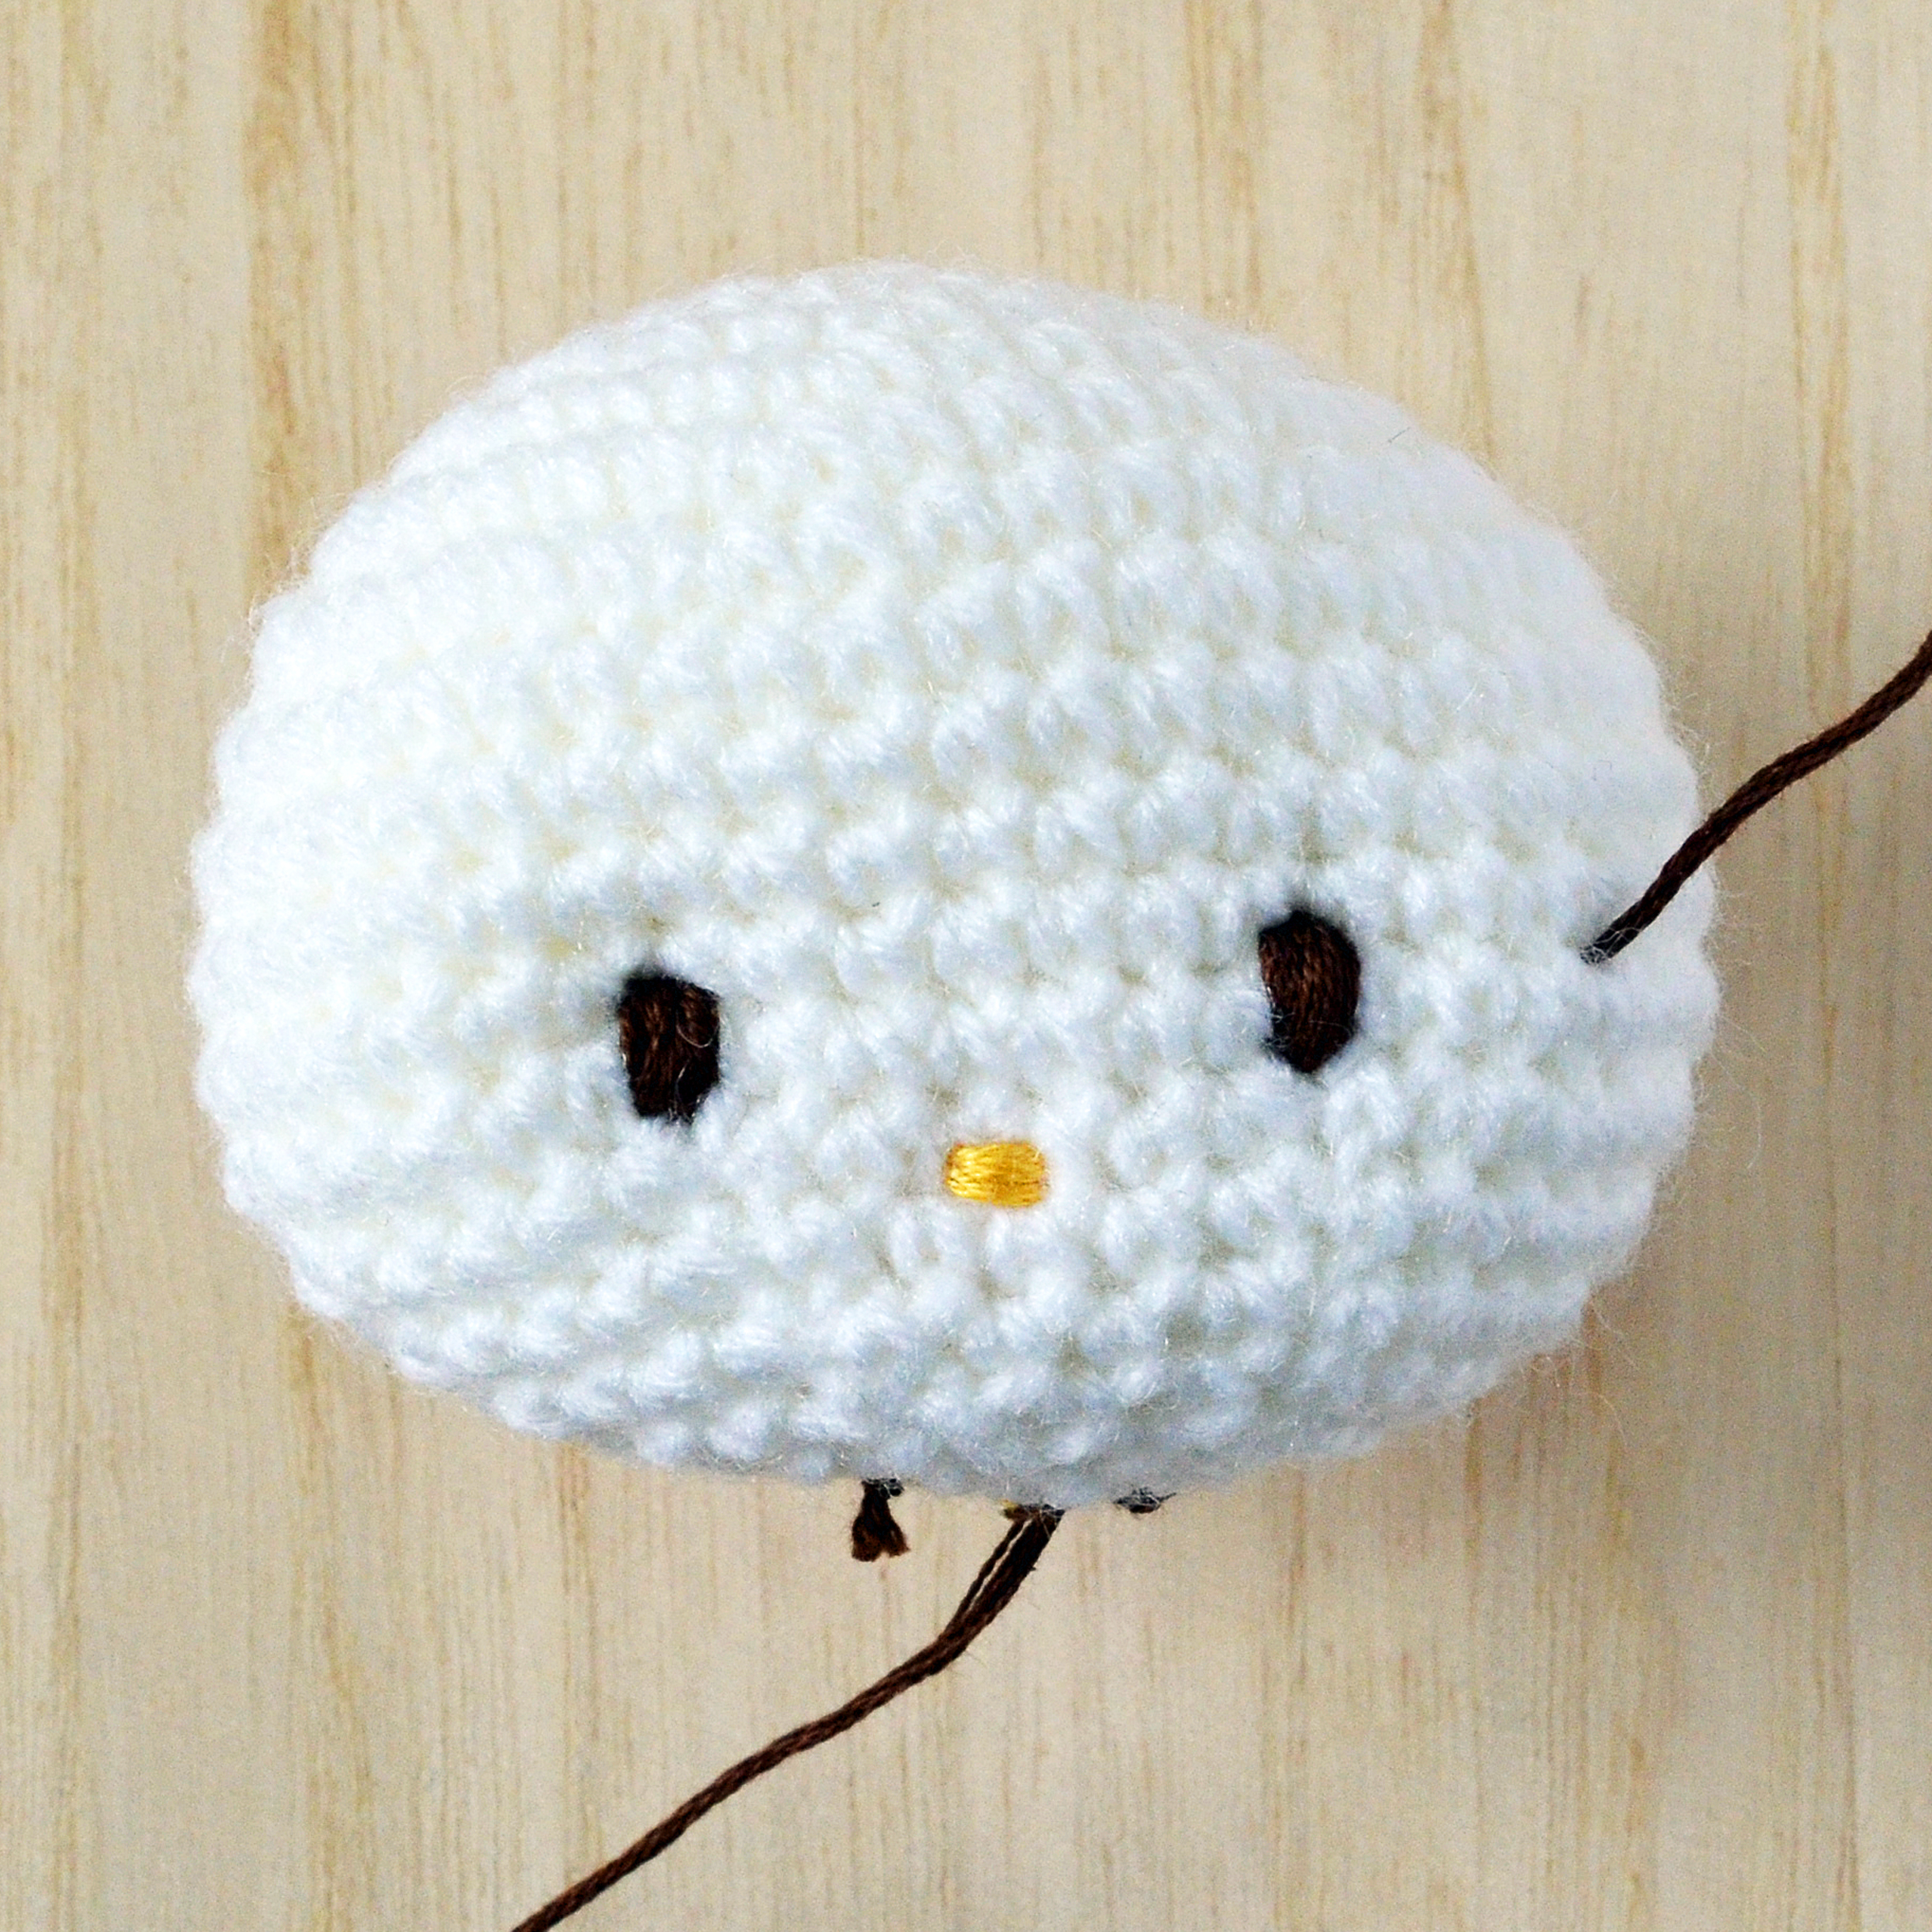 Faces for Amigurumi Part 1: Using Safety Eyes And Simple ... | 2450x2450